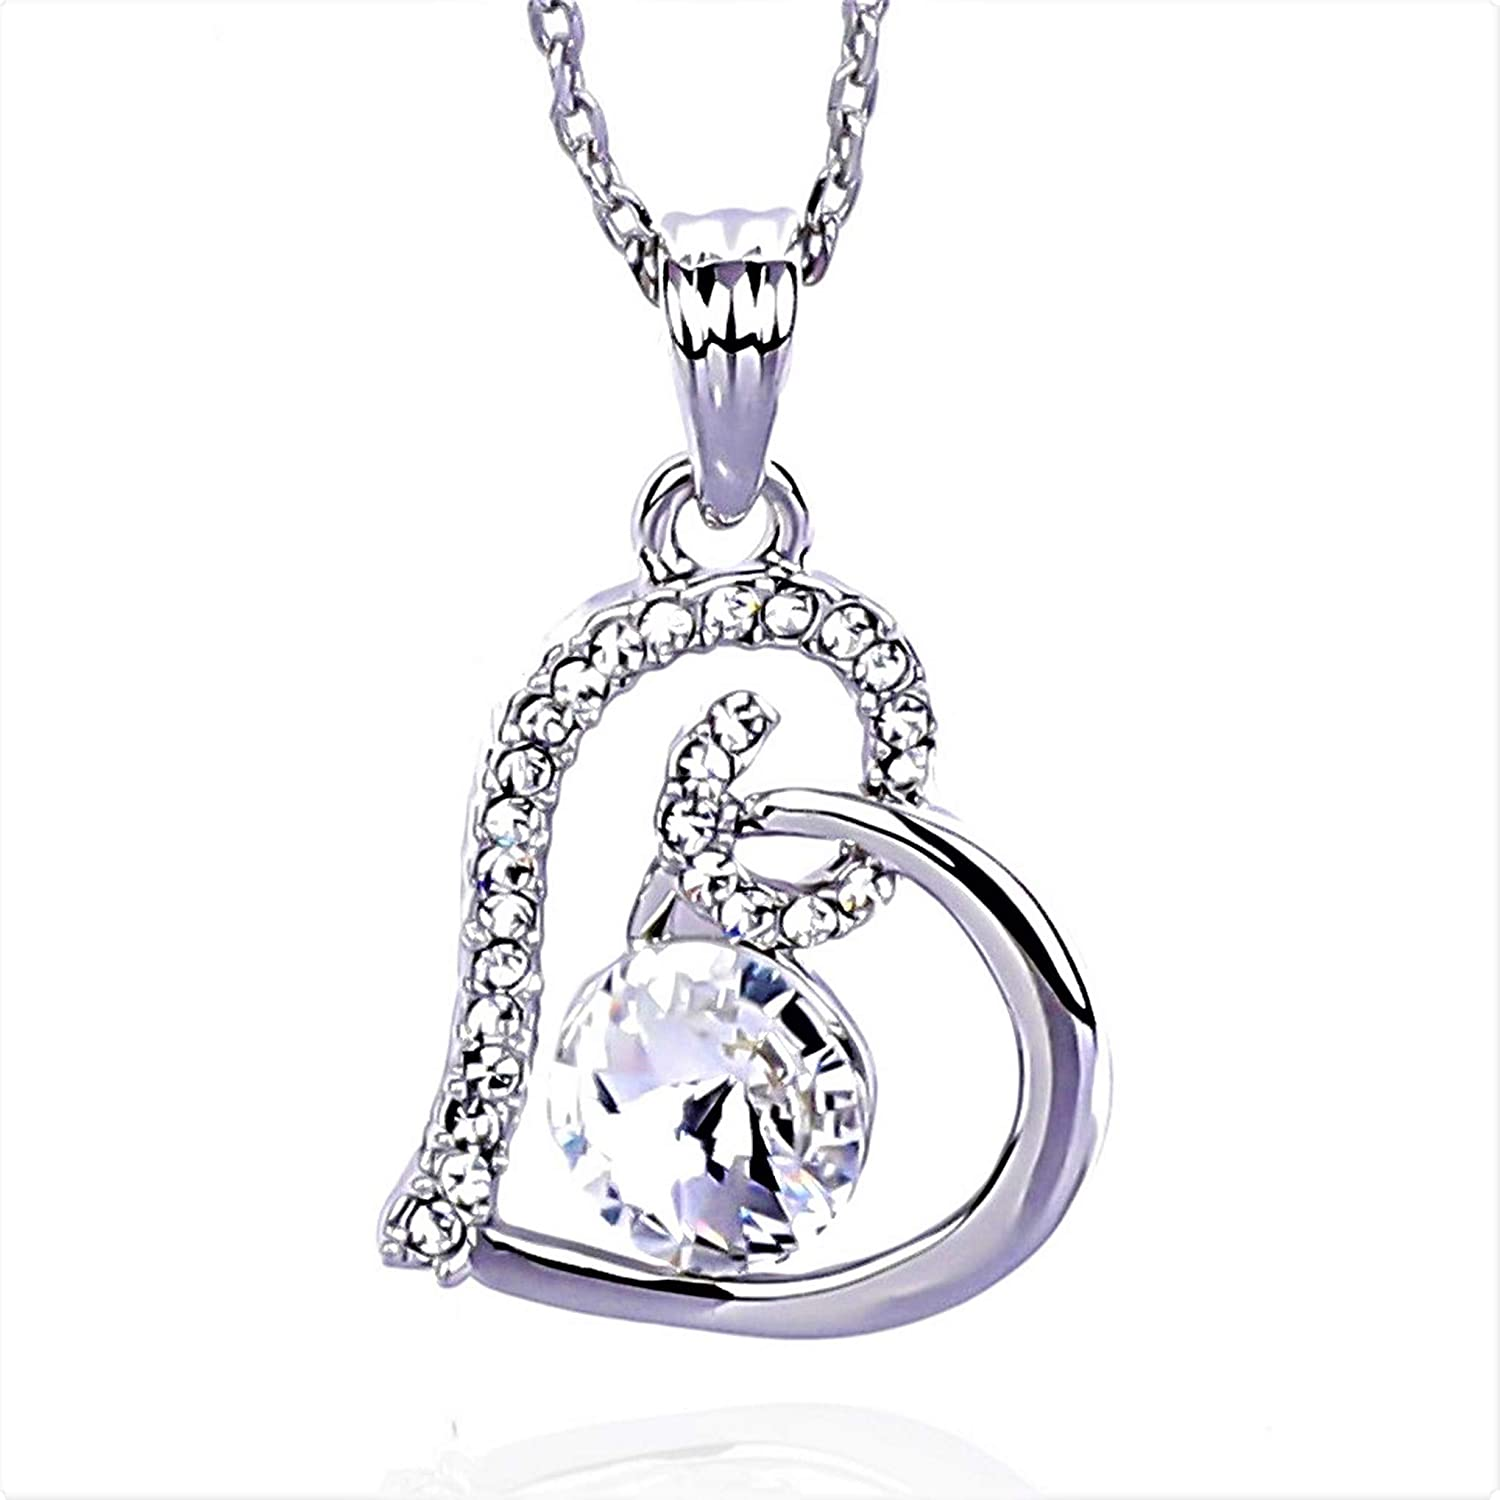 NickAngelo s Birthstone Love Heart Pendant Necklace Platinum Plated Made  With Swarovski Elements Elegant Custom Jewelry For Women by Month And Color  of ... 00327b543f